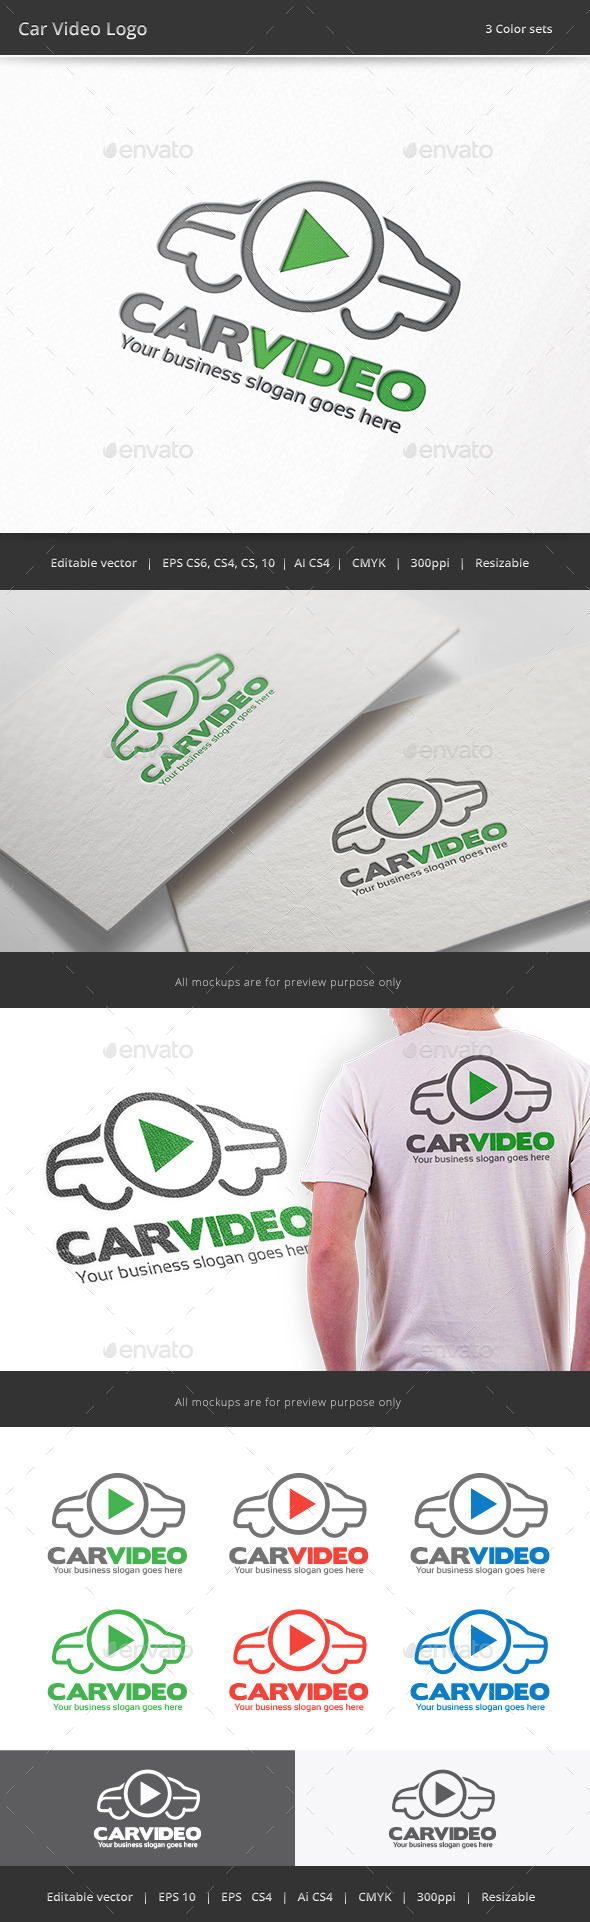 GraphicRiver Car Video Logo 9809446